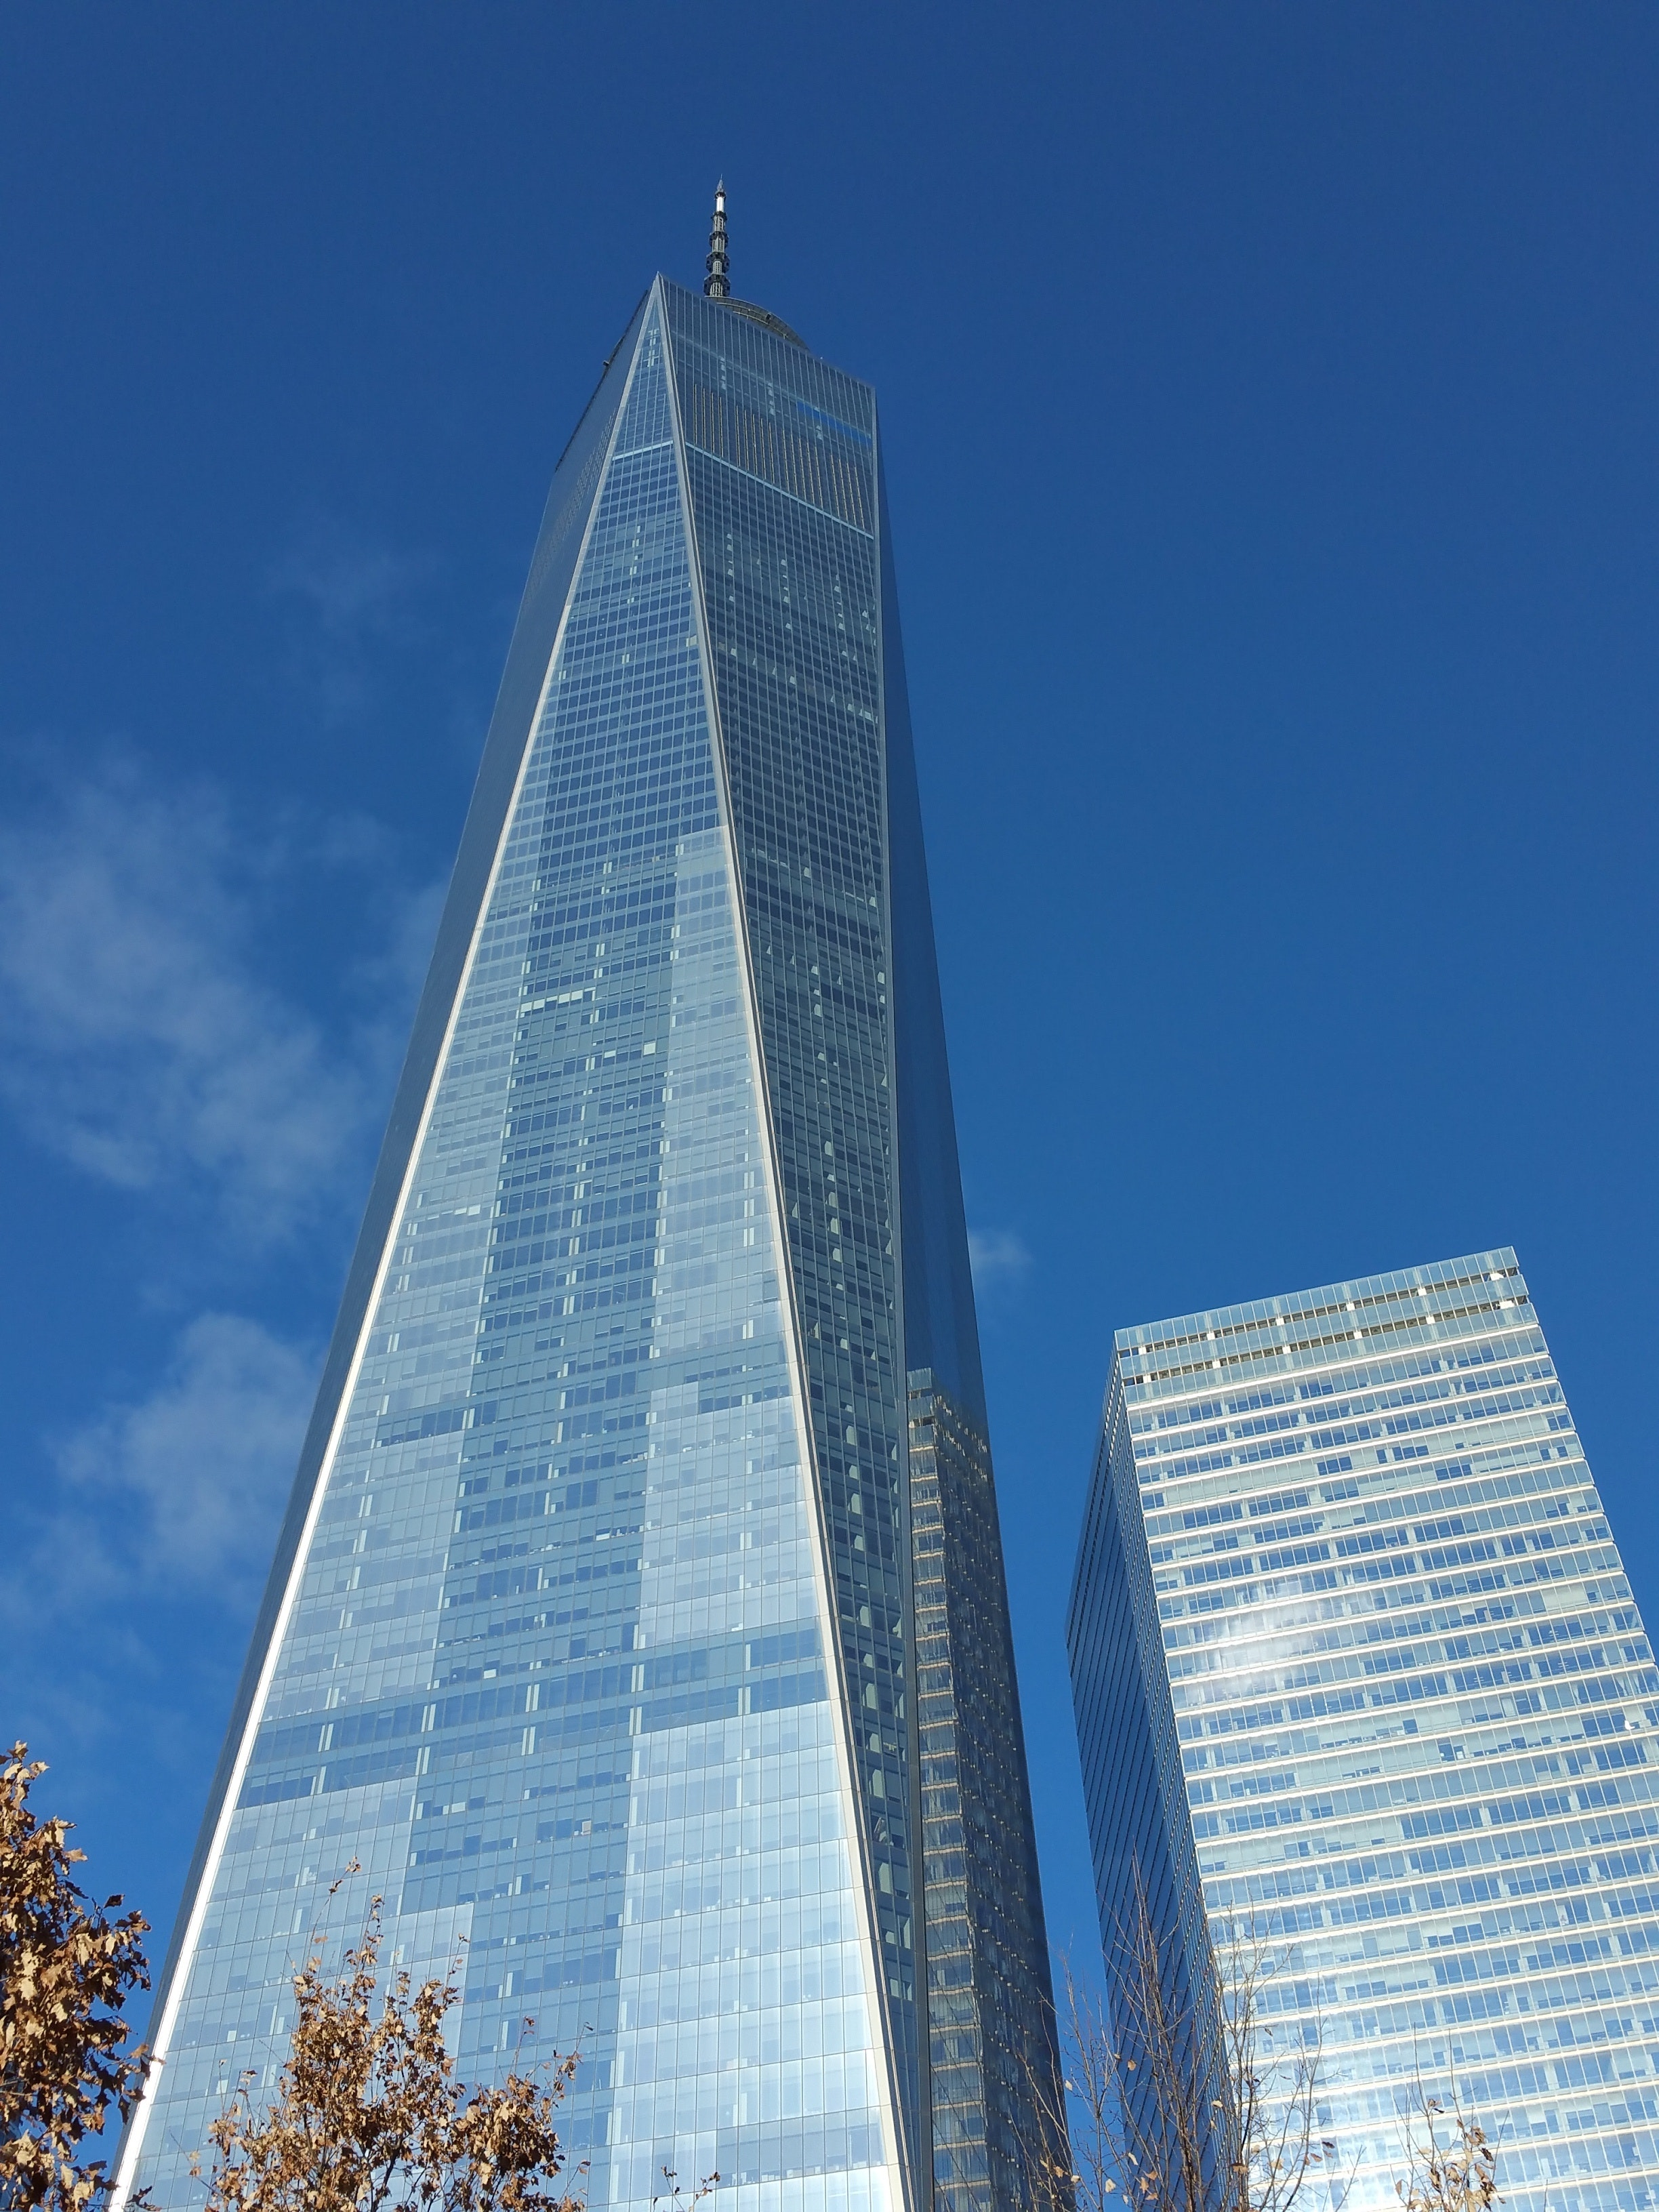 Low Angle Photography Of High Rise Buildings · Free Stock